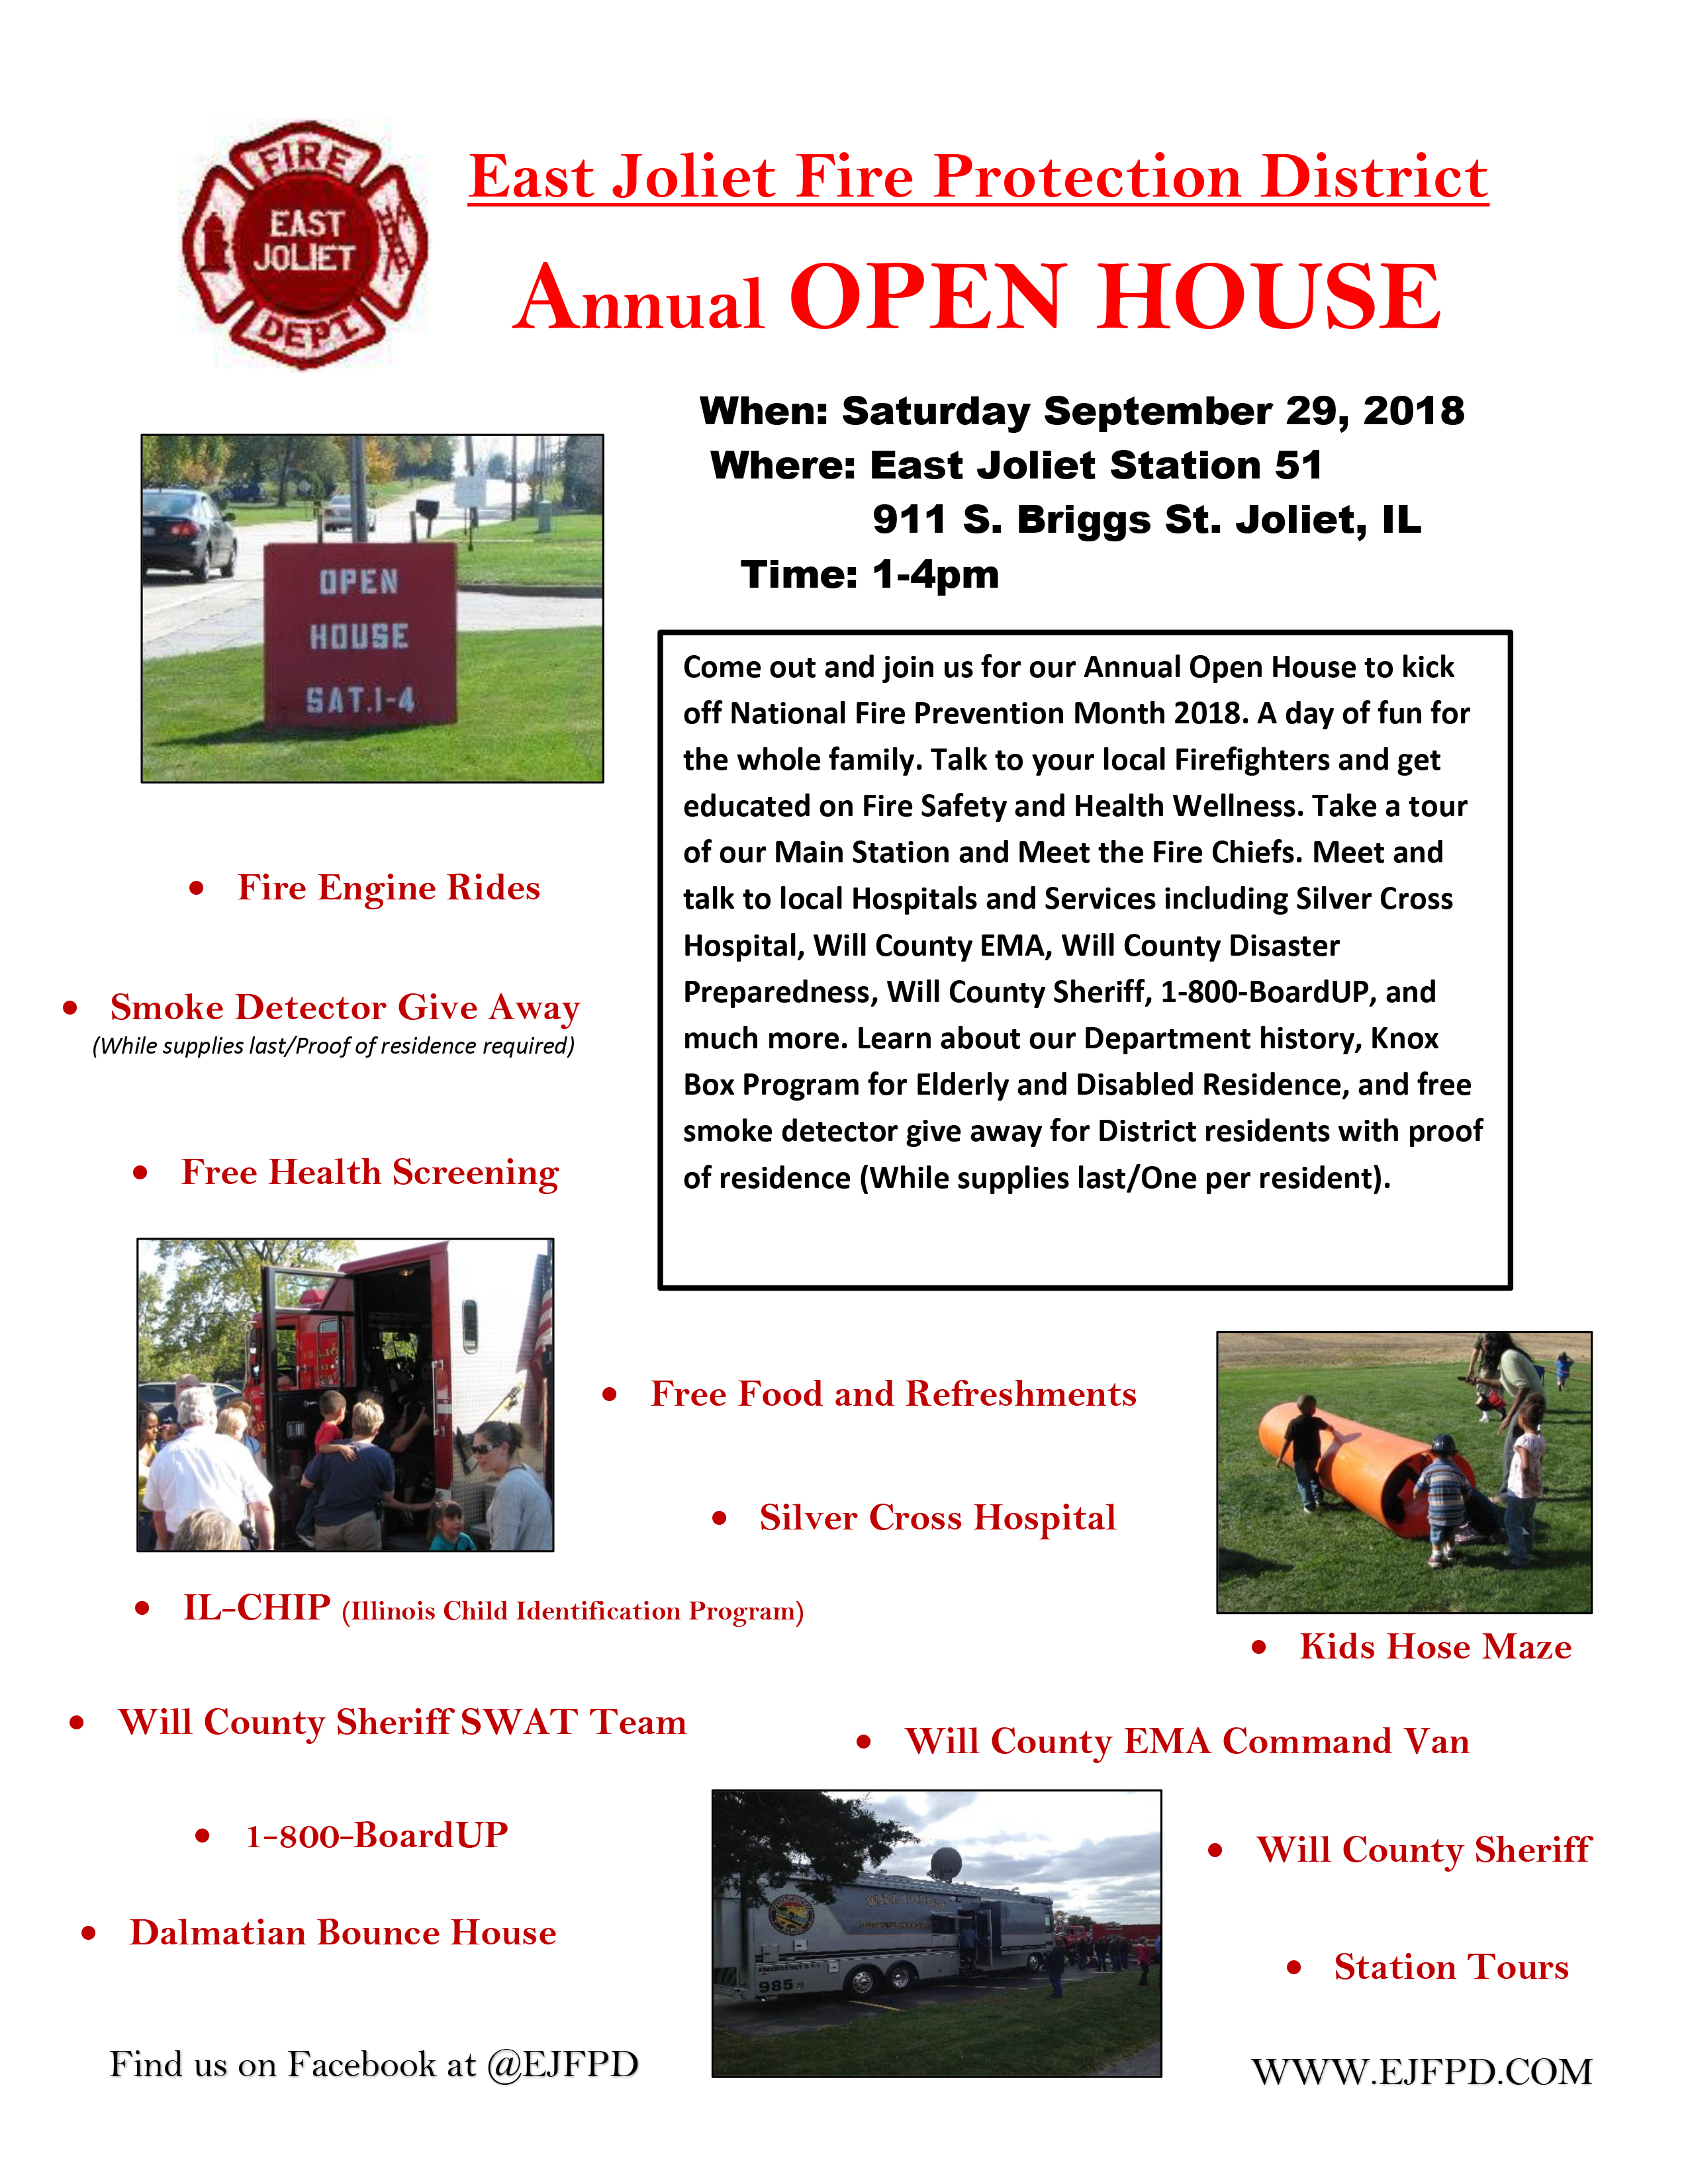 East Joliet FPD open house